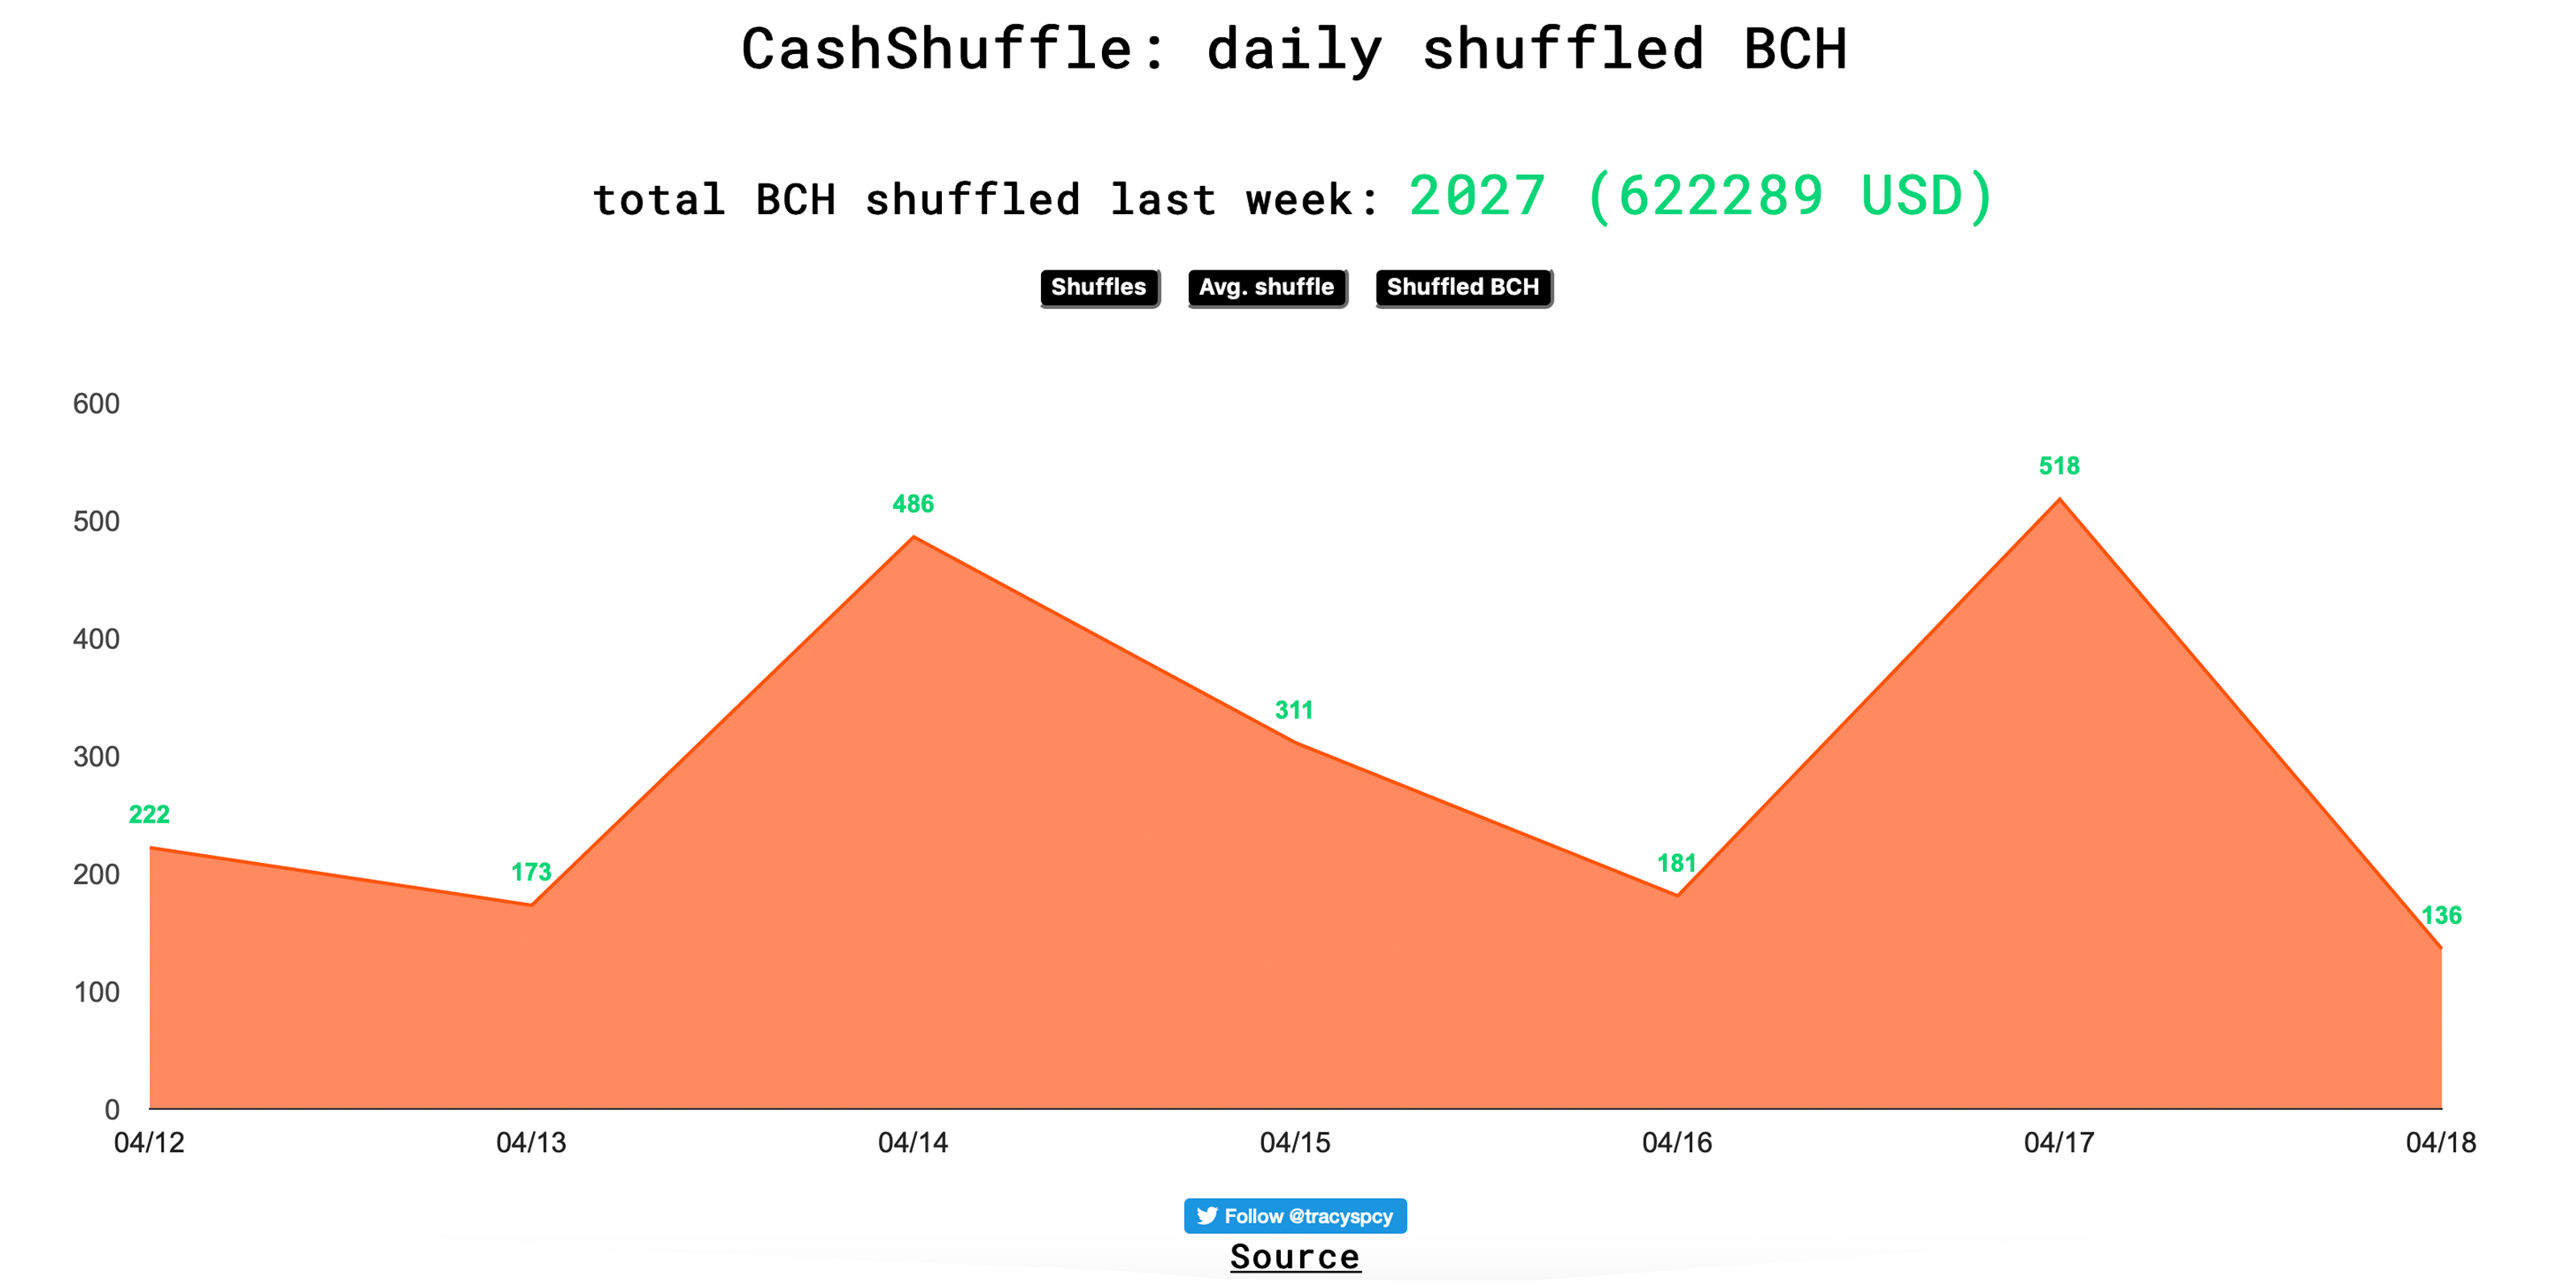 Statistics Show Bitcoin Cash Is a Strong Contender After Crypto Winter